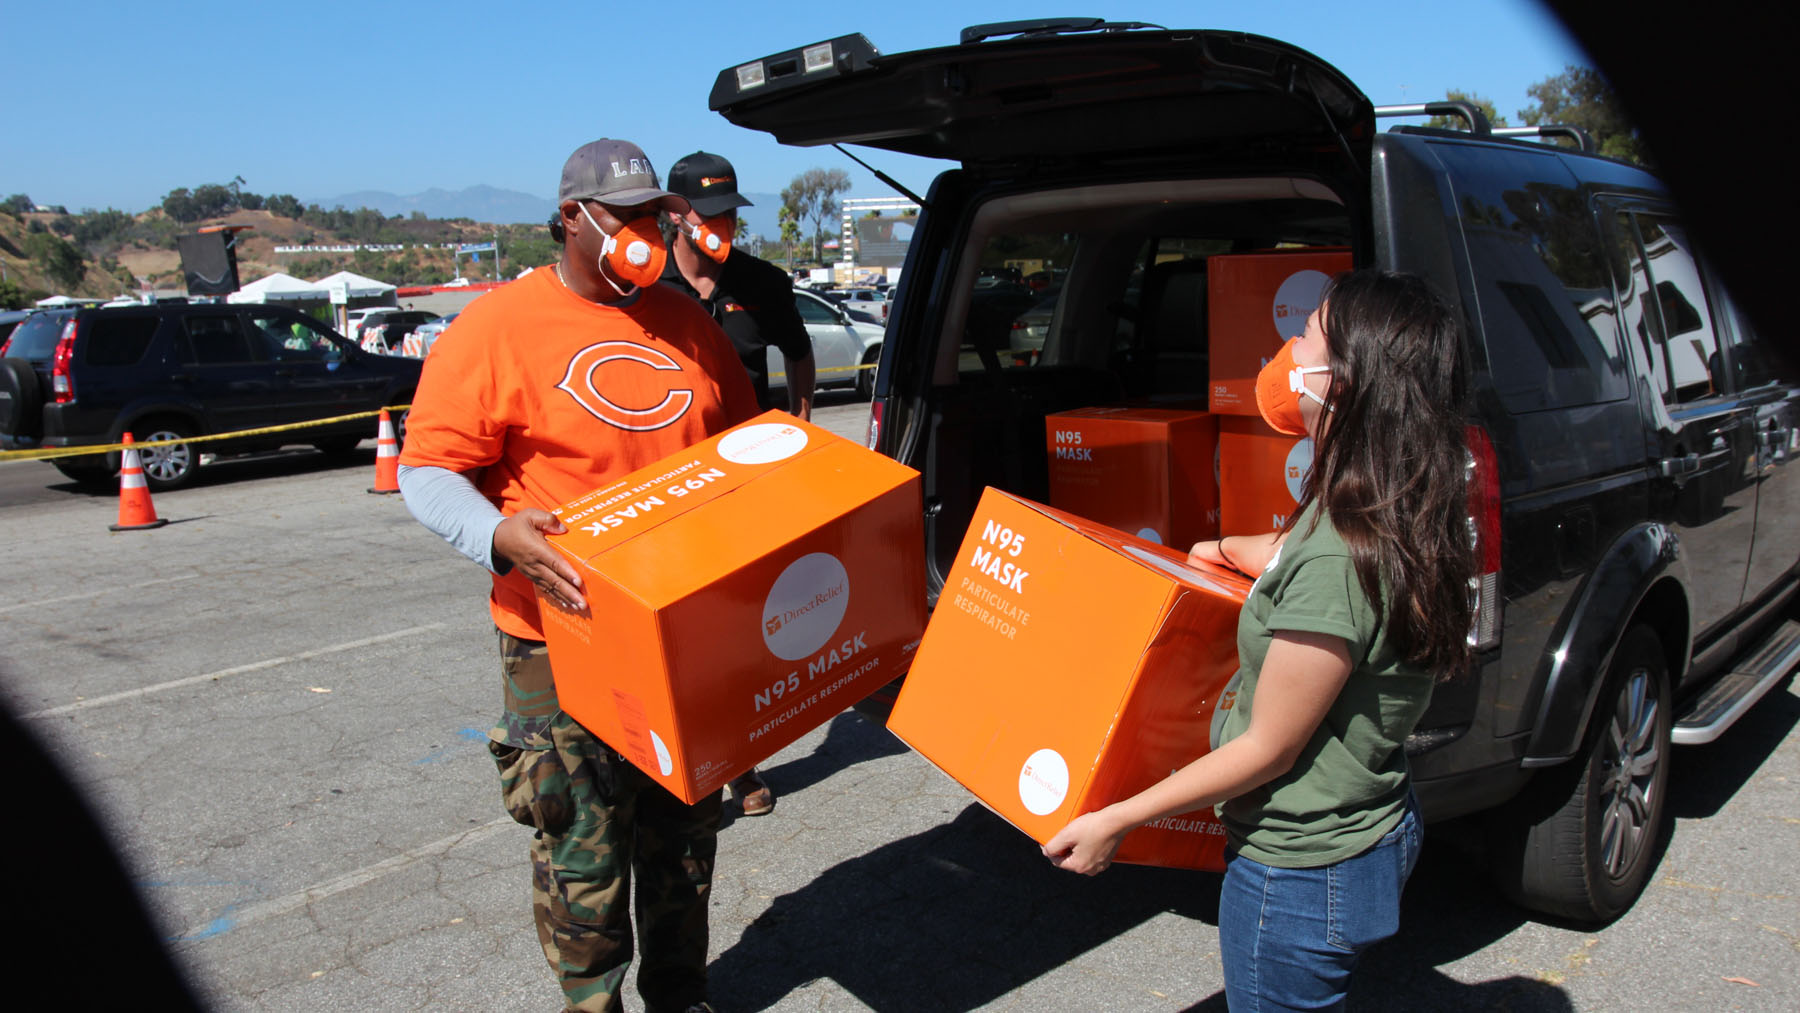 CORE responders carry N95 masks for volunteers at Dodger Stadium, donated by Direct Relief. (Noah Smith/Direct Relief)